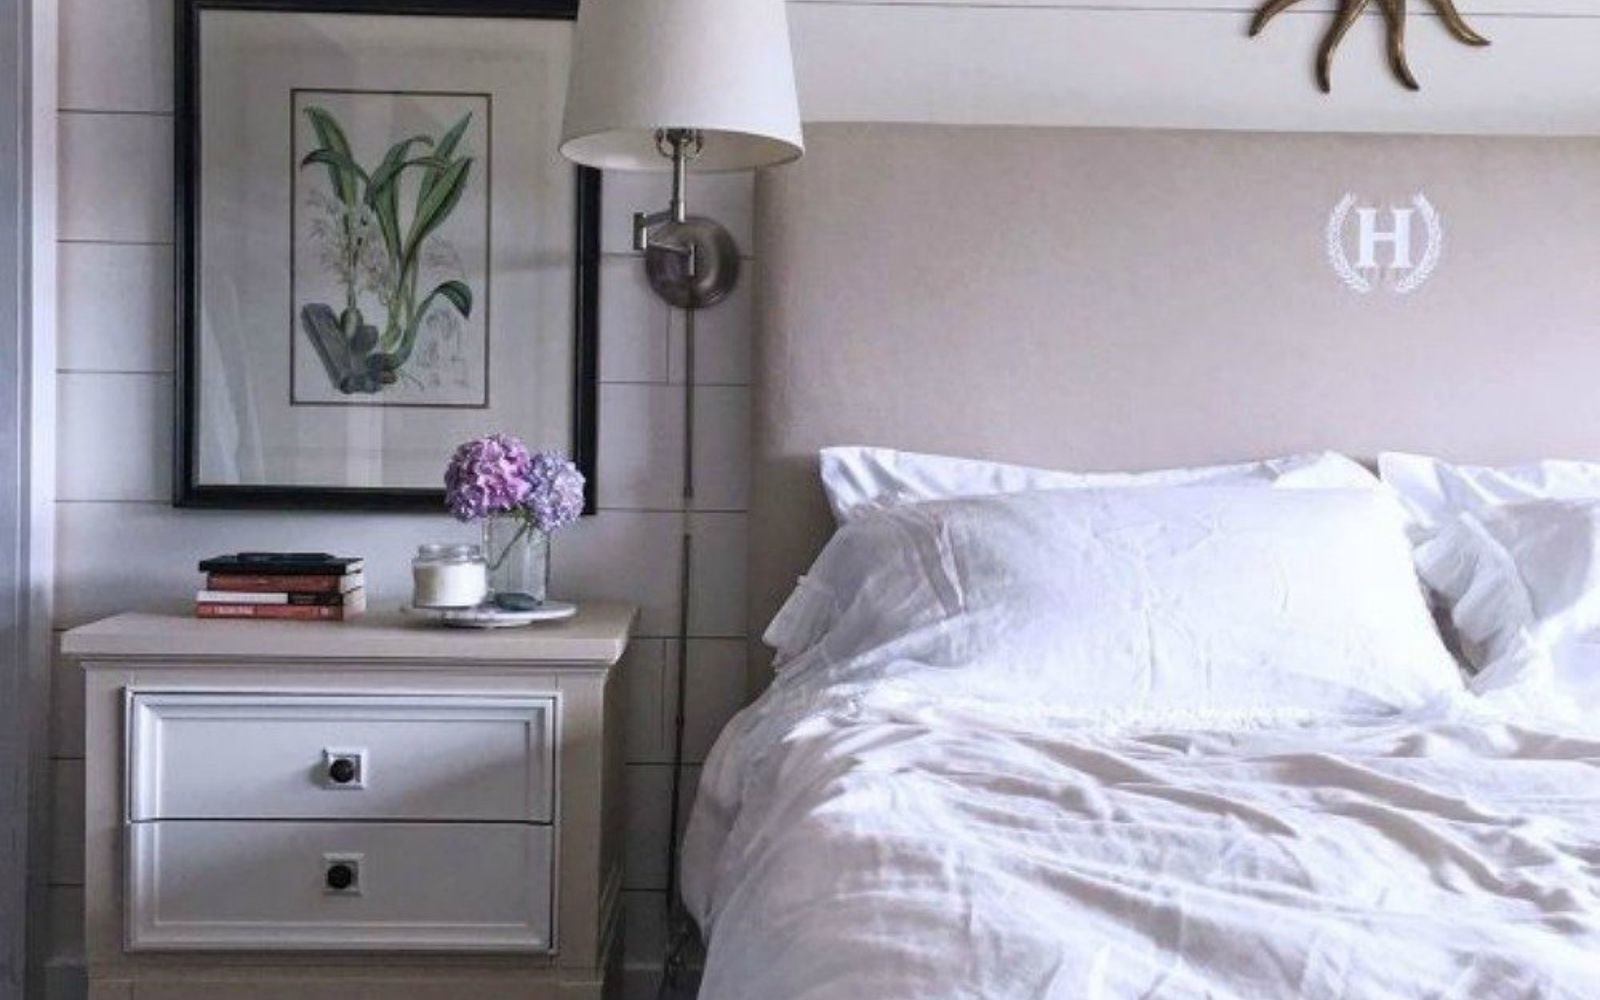 s these are the diy headboard ideas you ve been dreaming of, This monogramed dazzler